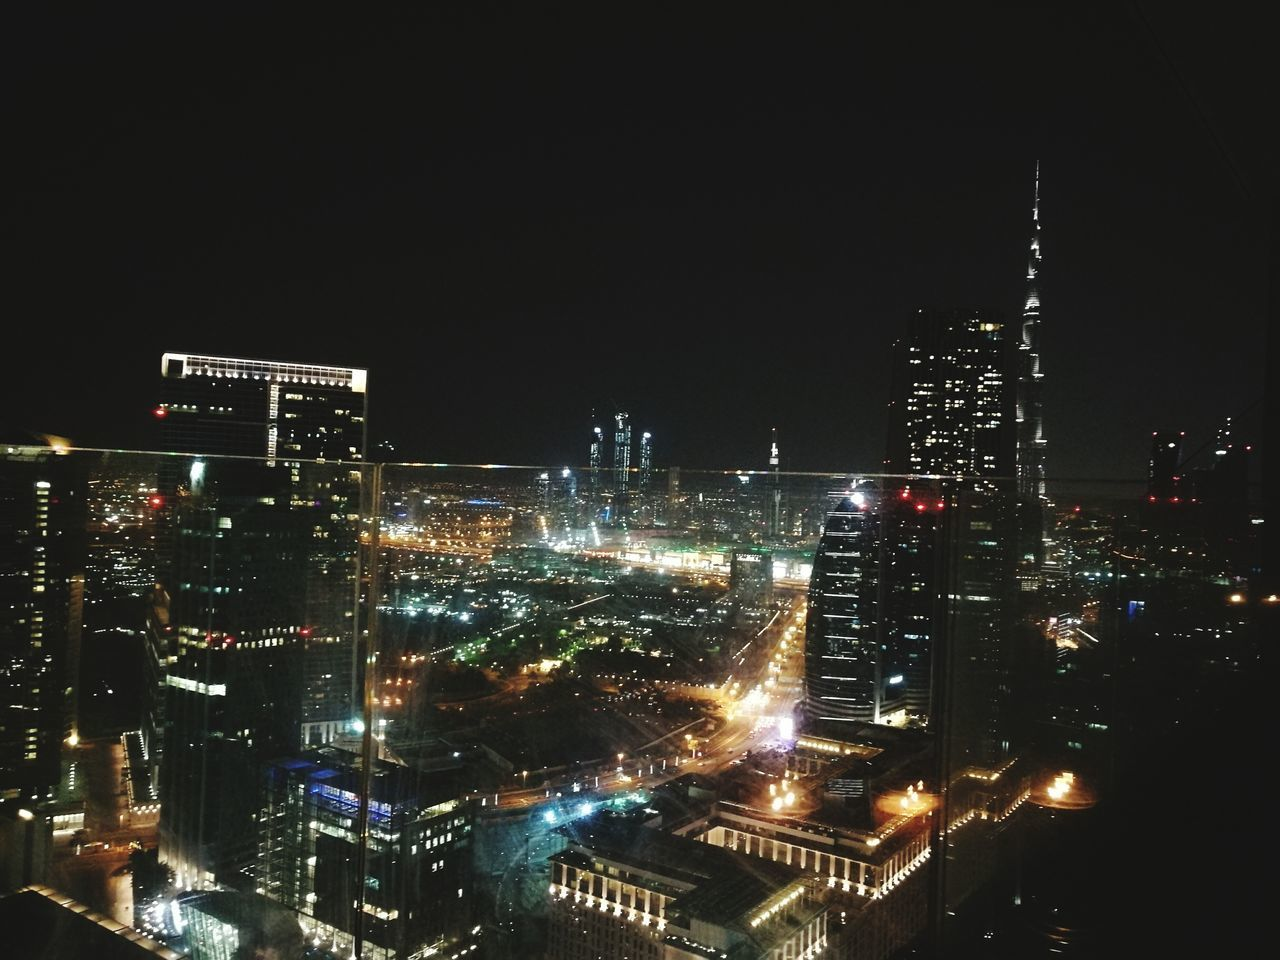 illuminated, night, architecture, building exterior, city, cityscape, built structure, no people, skyscraper, travel destinations, modern, outdoors, sky